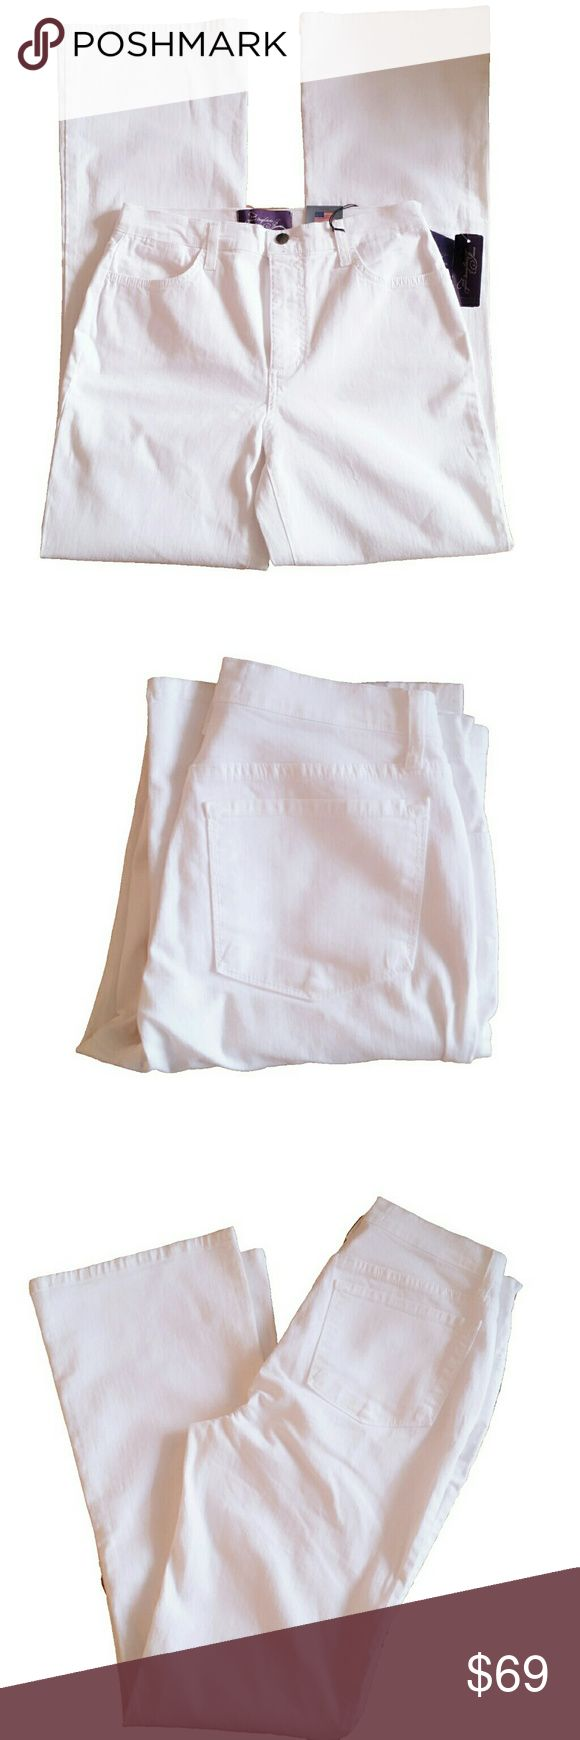 """NYDJ White Bootleg Jeans NYDJ White Bootleg Jeans Not Your Daughter's Jeans Lift Tuck Technology Approx Flat Measurements: Inseam- 32"""", Rise- 11"""", Ankle- 9.5"""" 97% cotton, 3% spandex Size 8 NYDJ Jeans Boot Cut"""